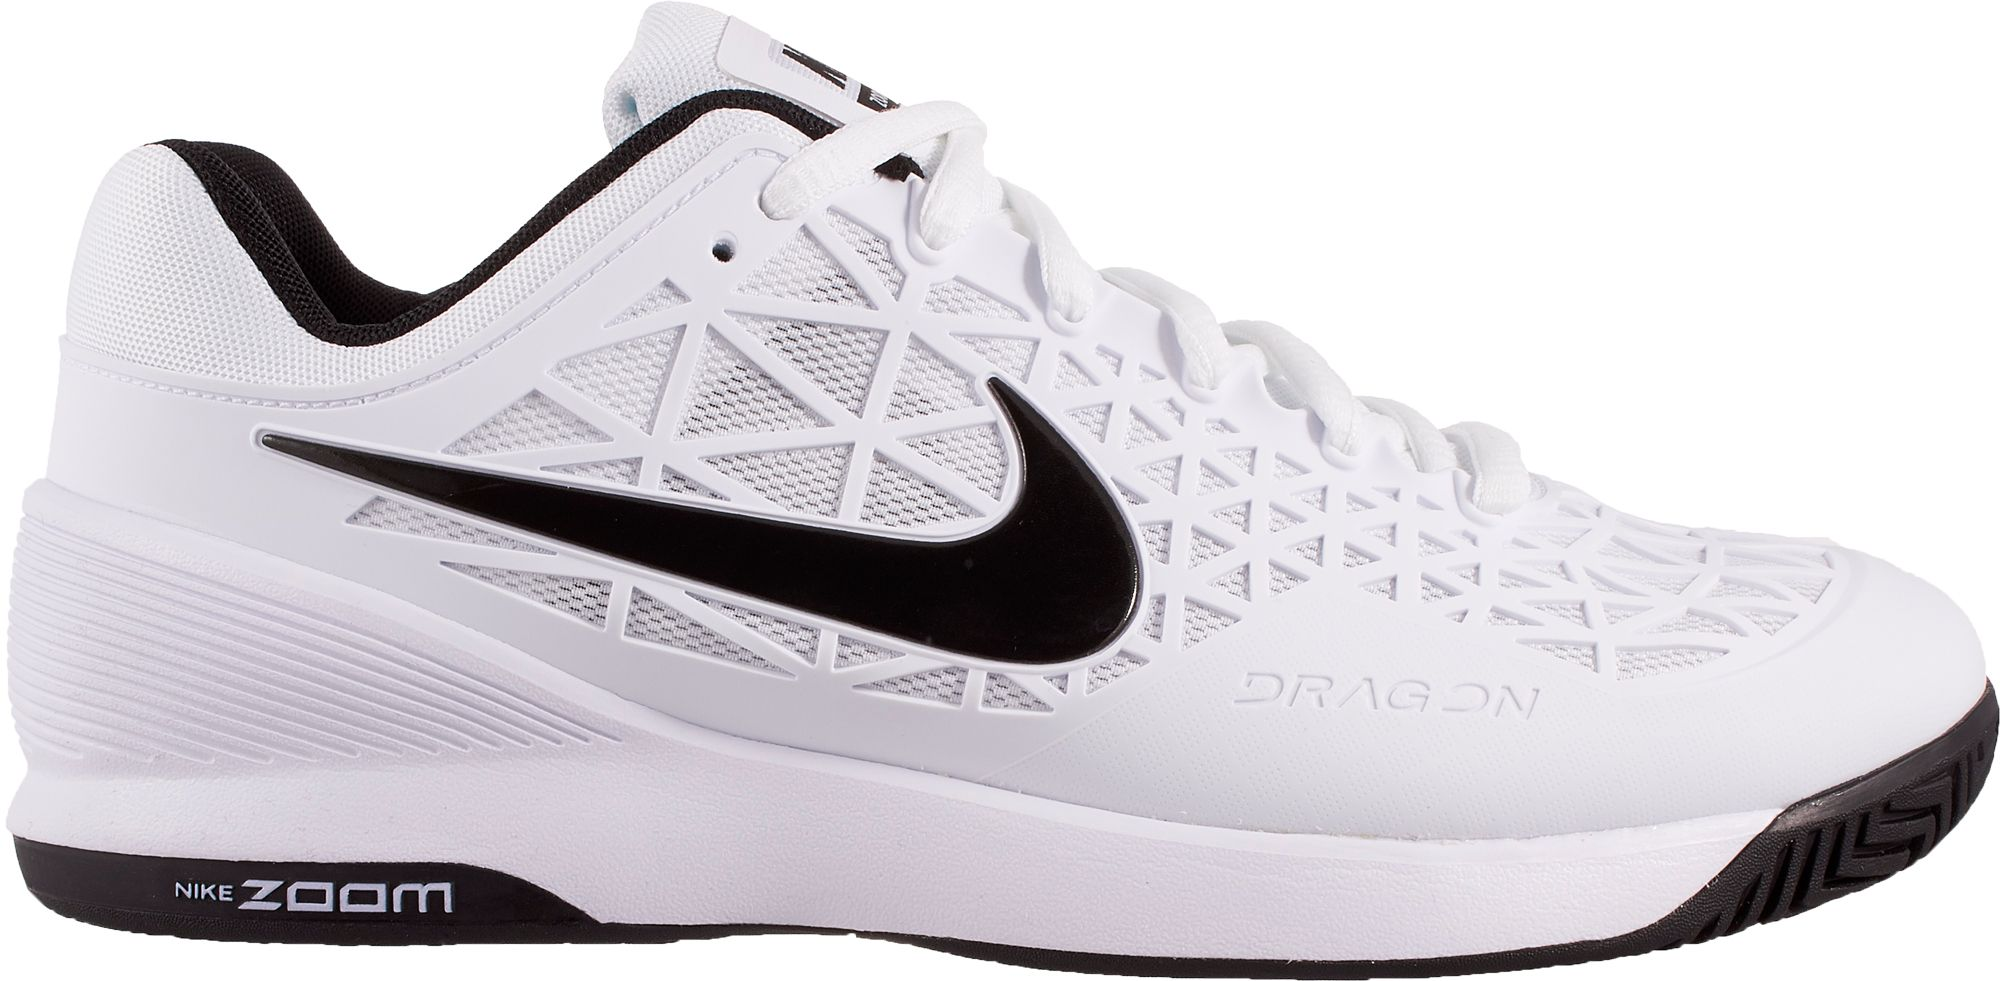 Nike Mens Zoom Cage 2 Tennis Shoes 000 000   000 noImageFound